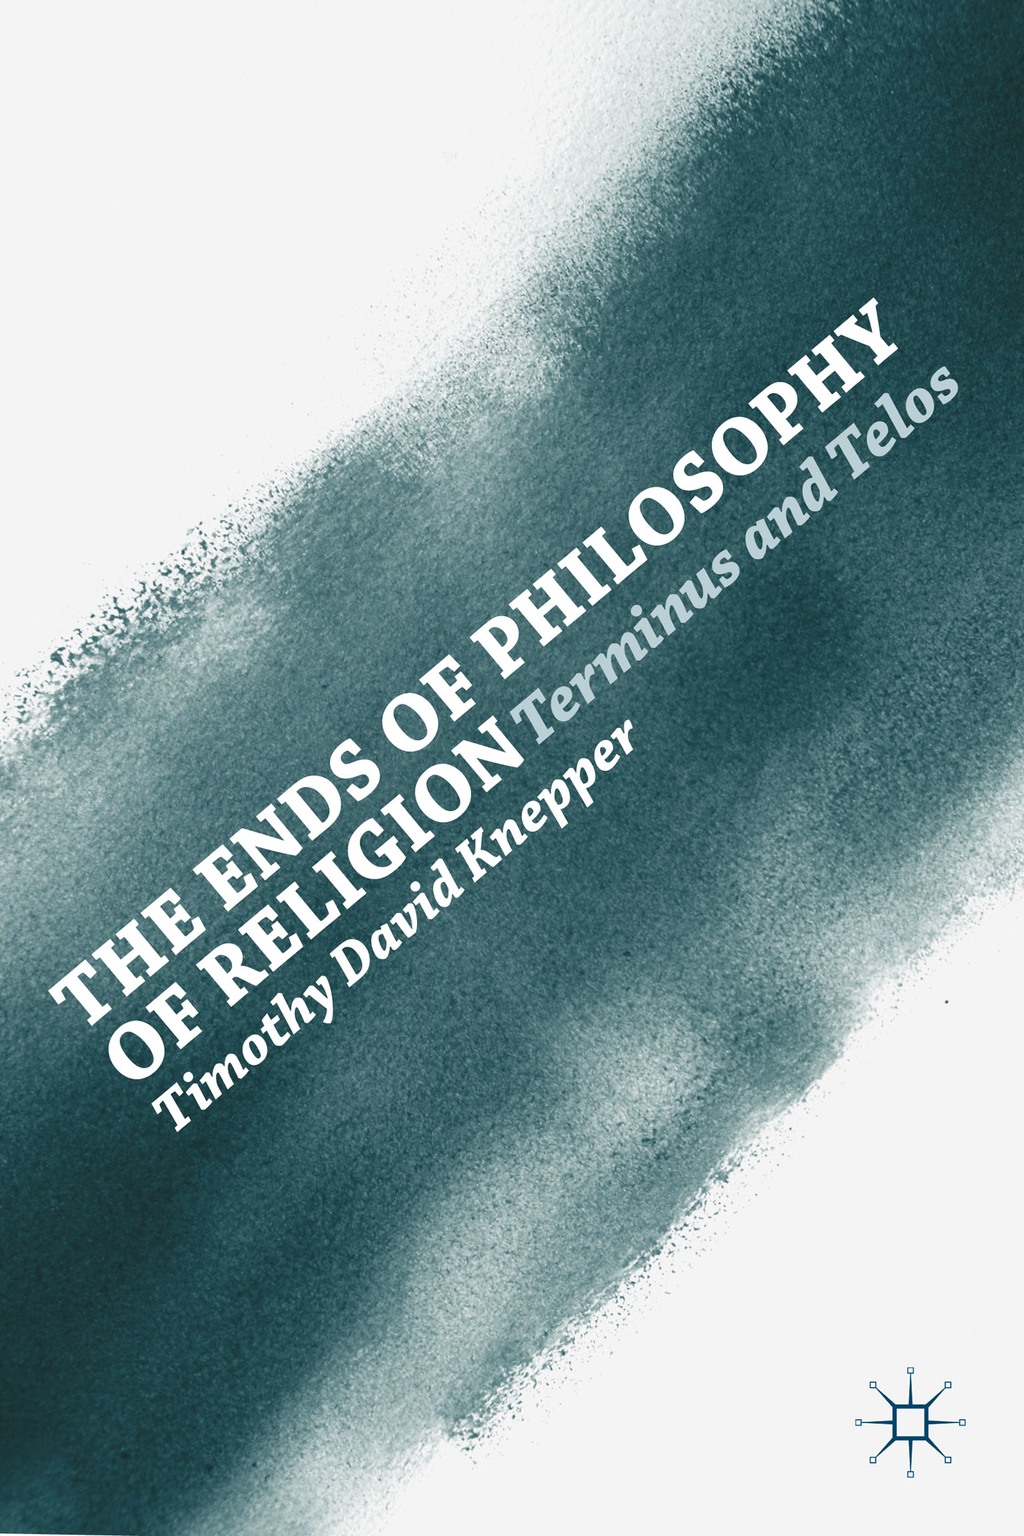 The Ends of Philosophy of Religion Terminus and Telos